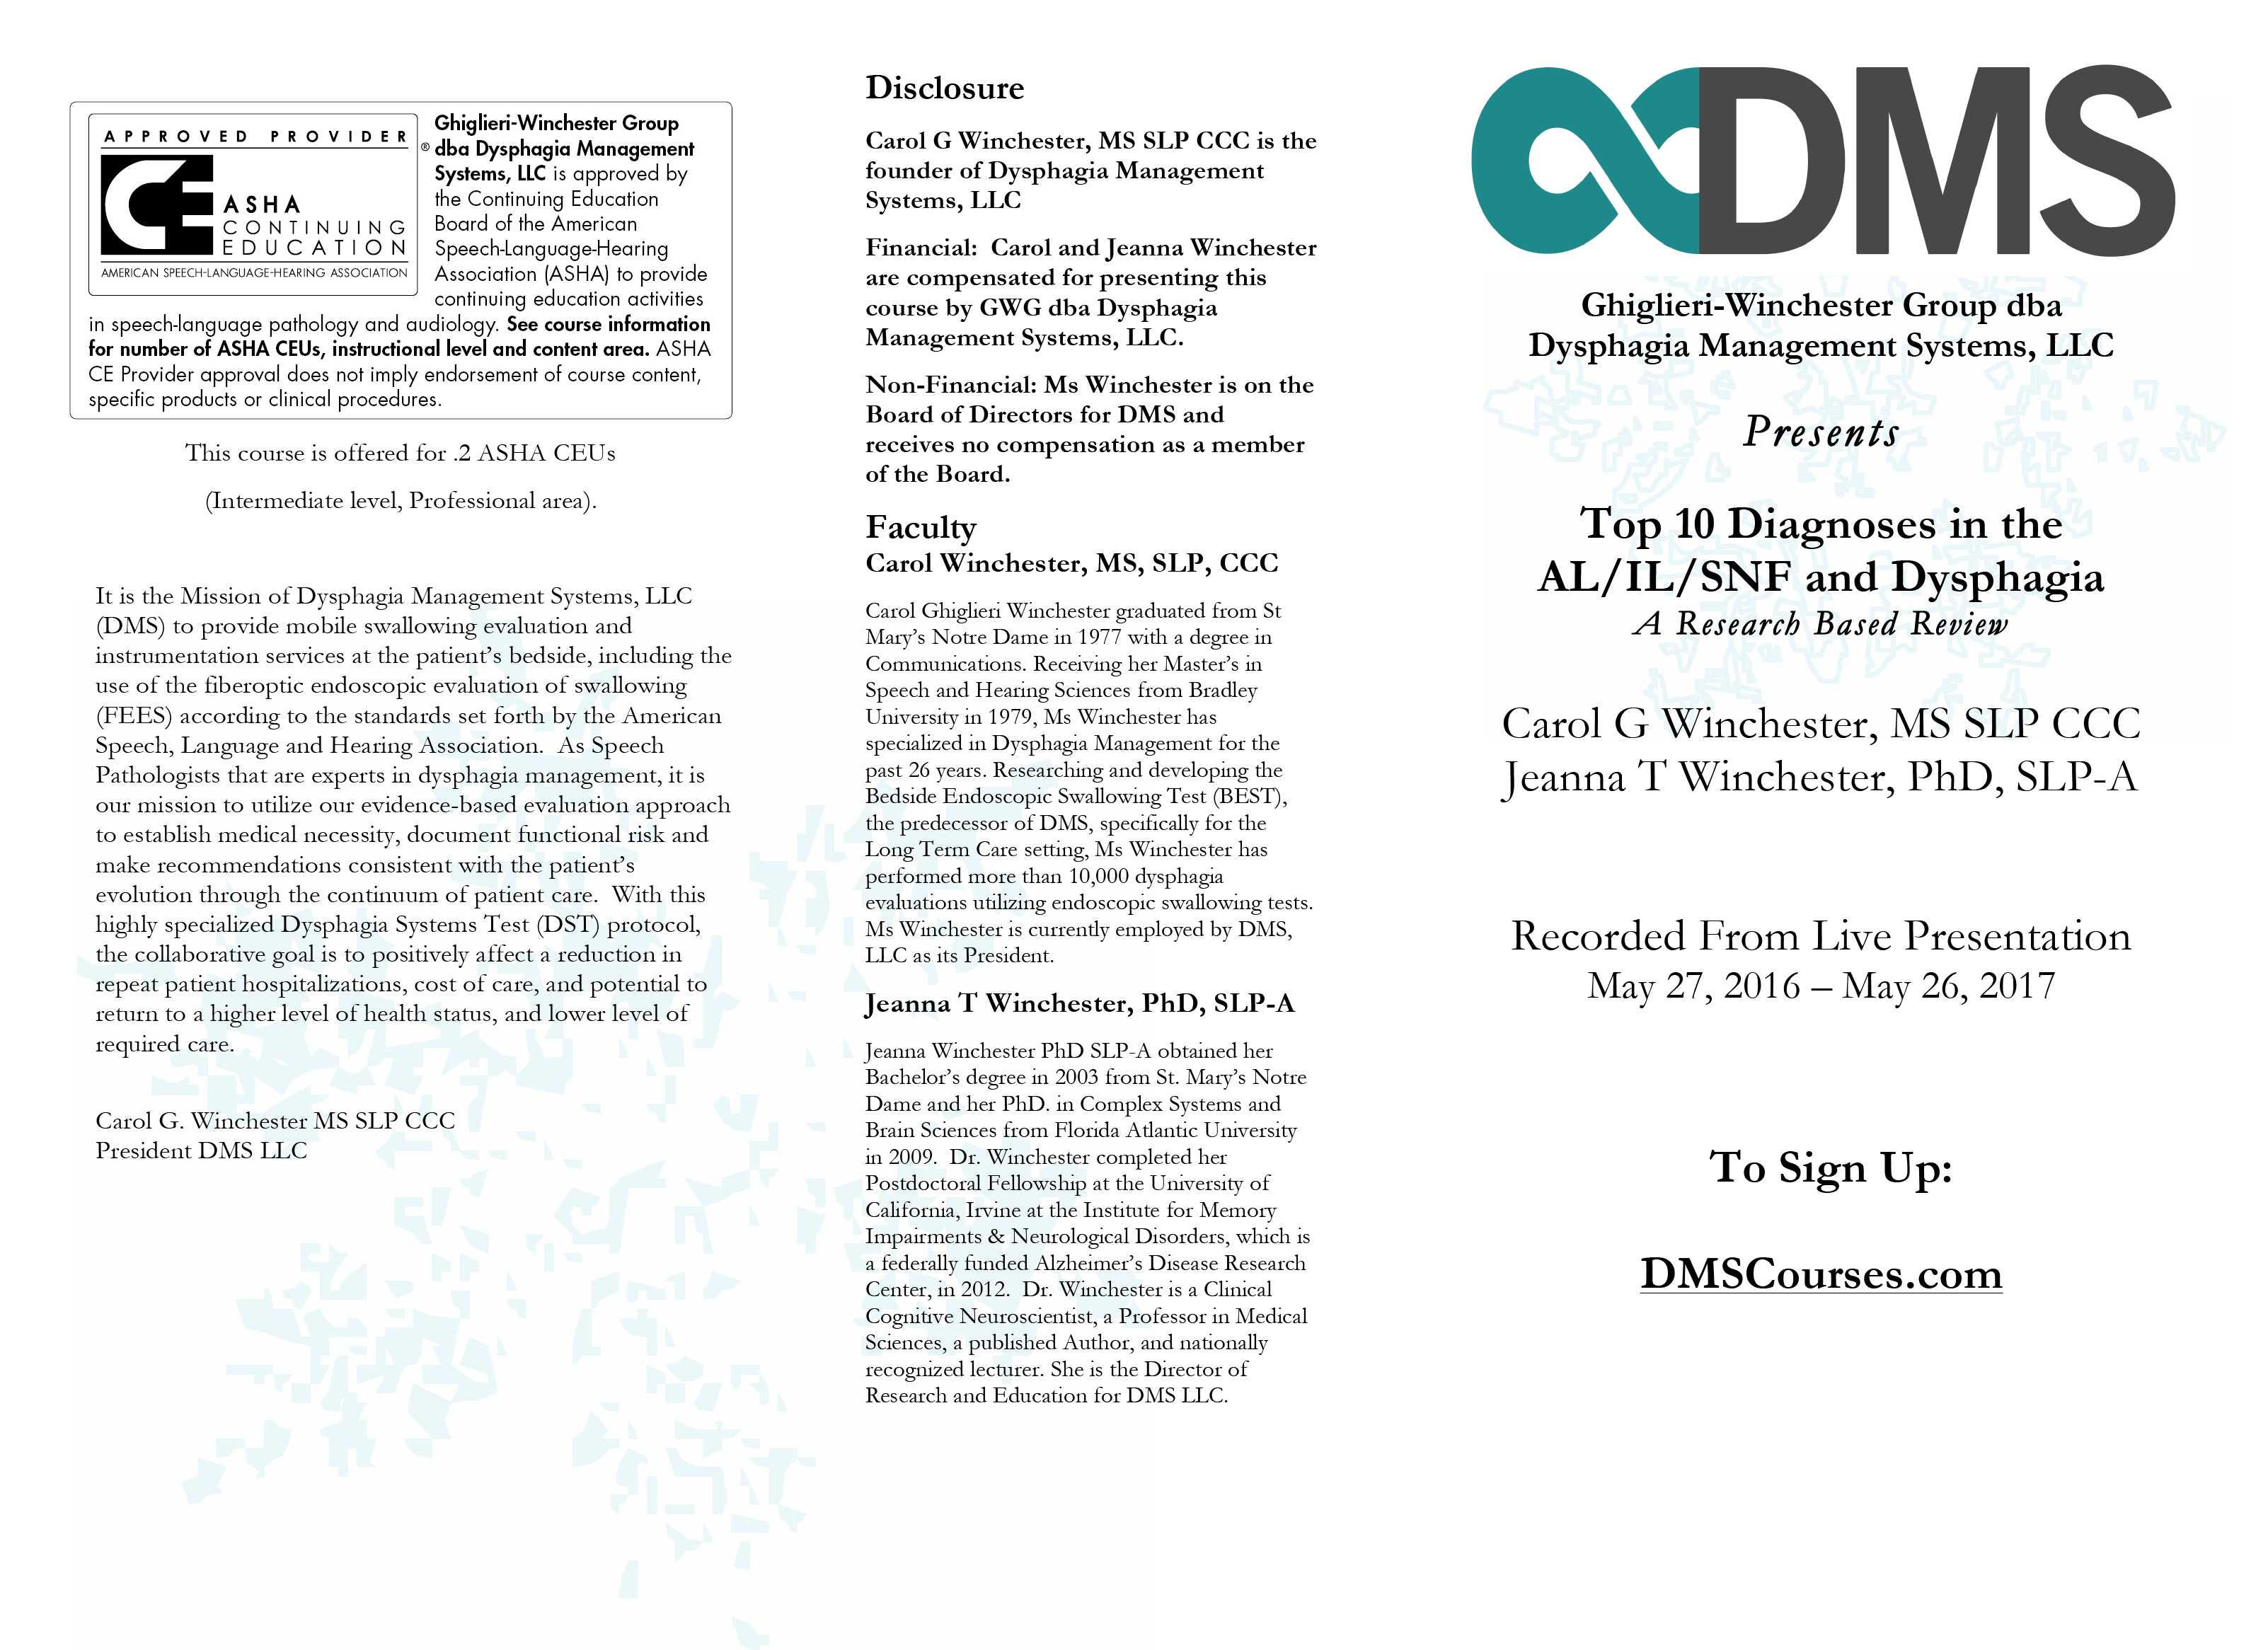 GWG AAOQ1416 - Top 10 Diagnosis in the AL-IL-SNF and Dysphagia Page 1